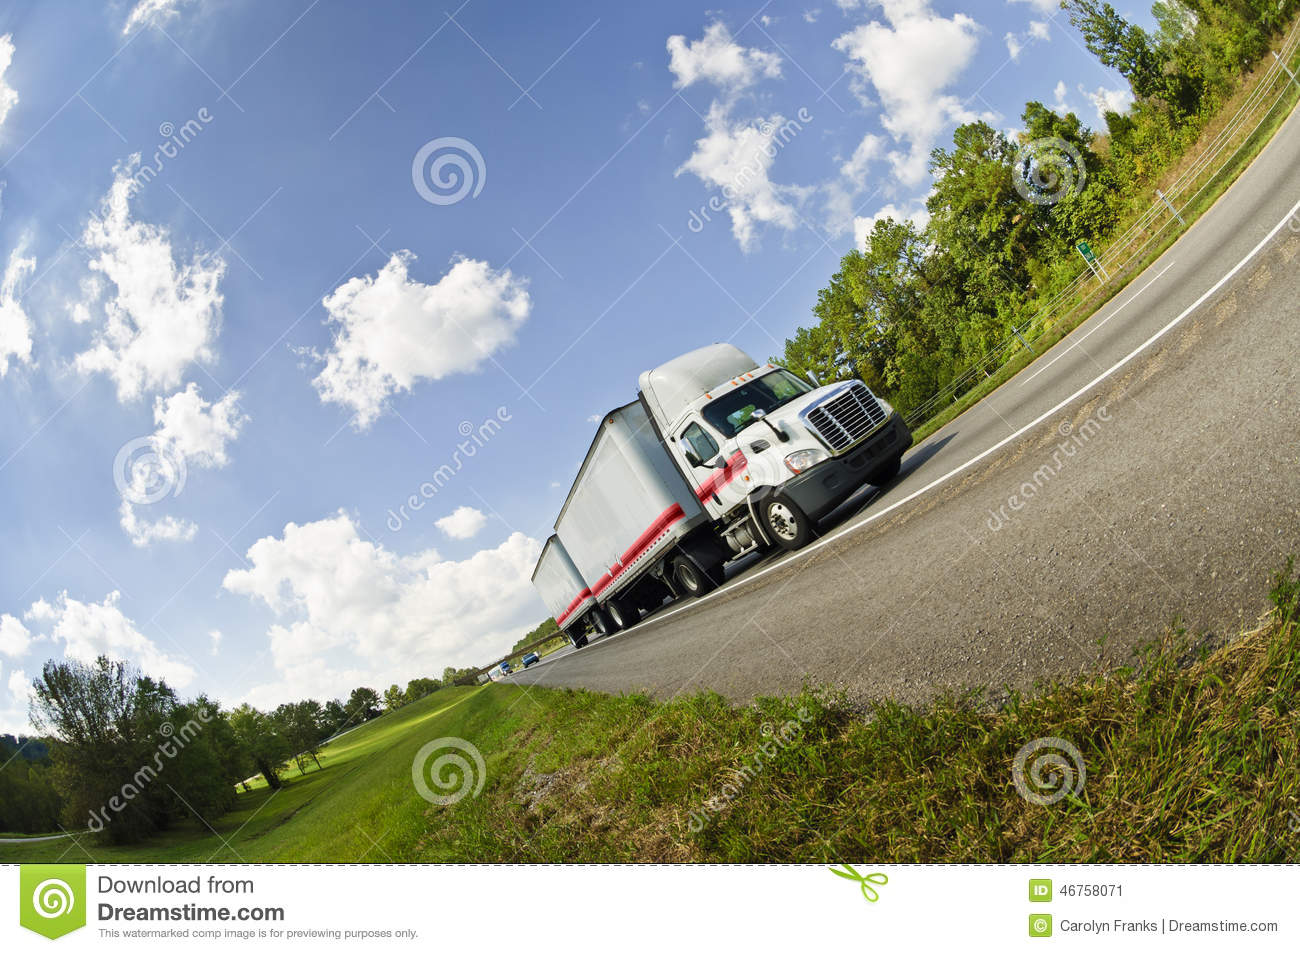 Fisheye View Of Semi Truck On Road